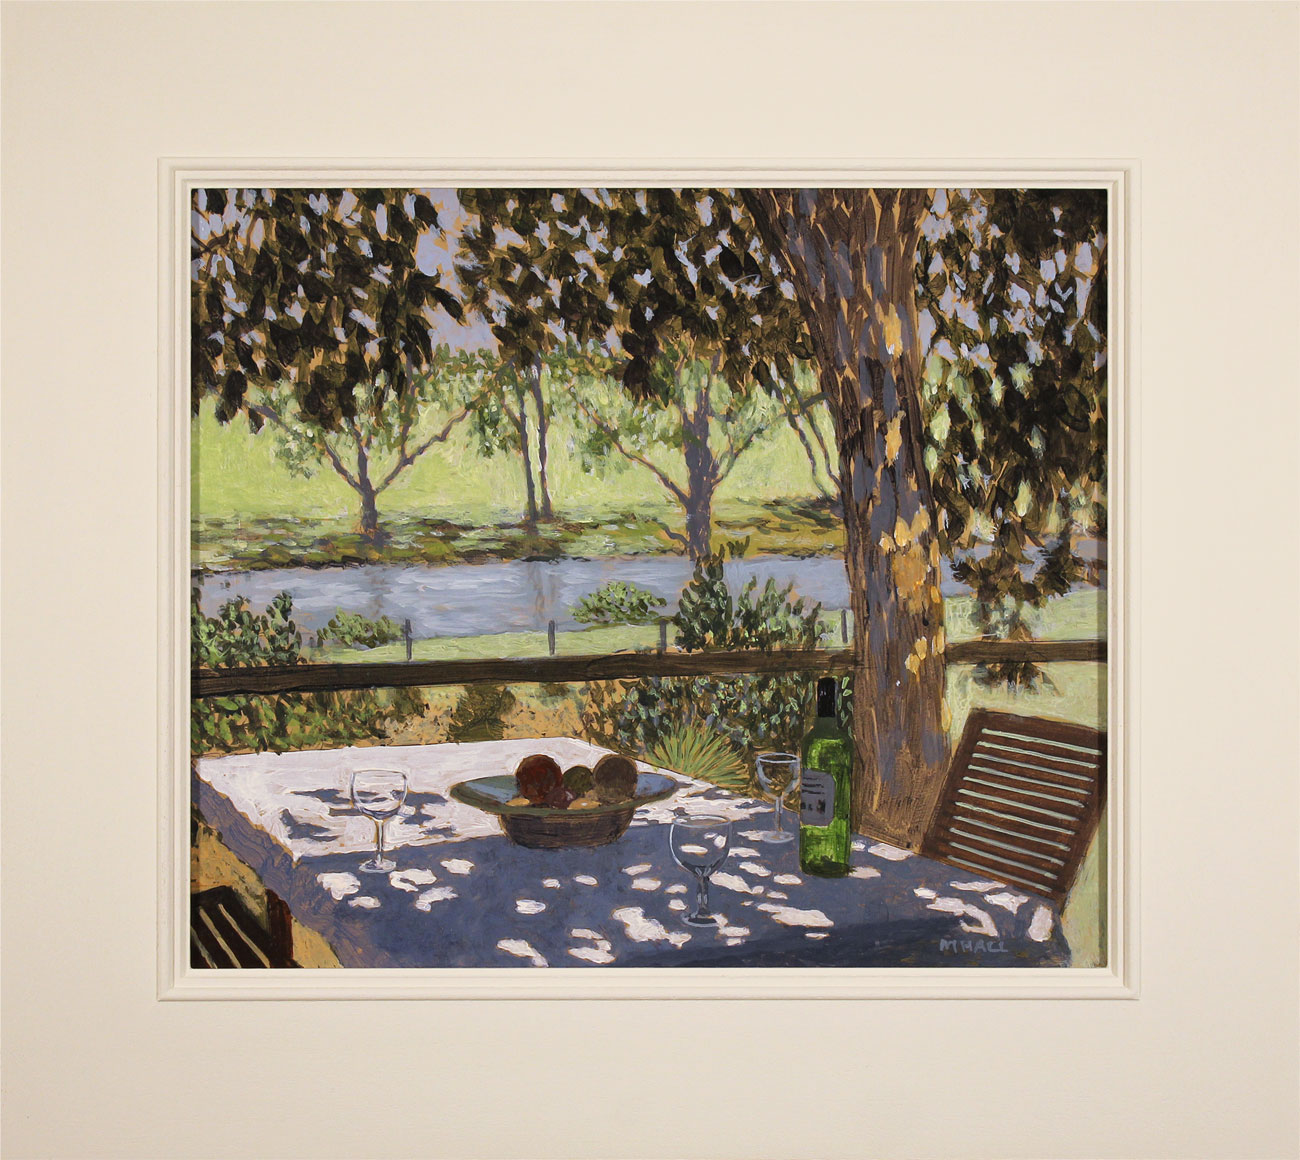 Mike Hall, Original acrylic painting on board, Glass of Wine by the River Click to enlarge